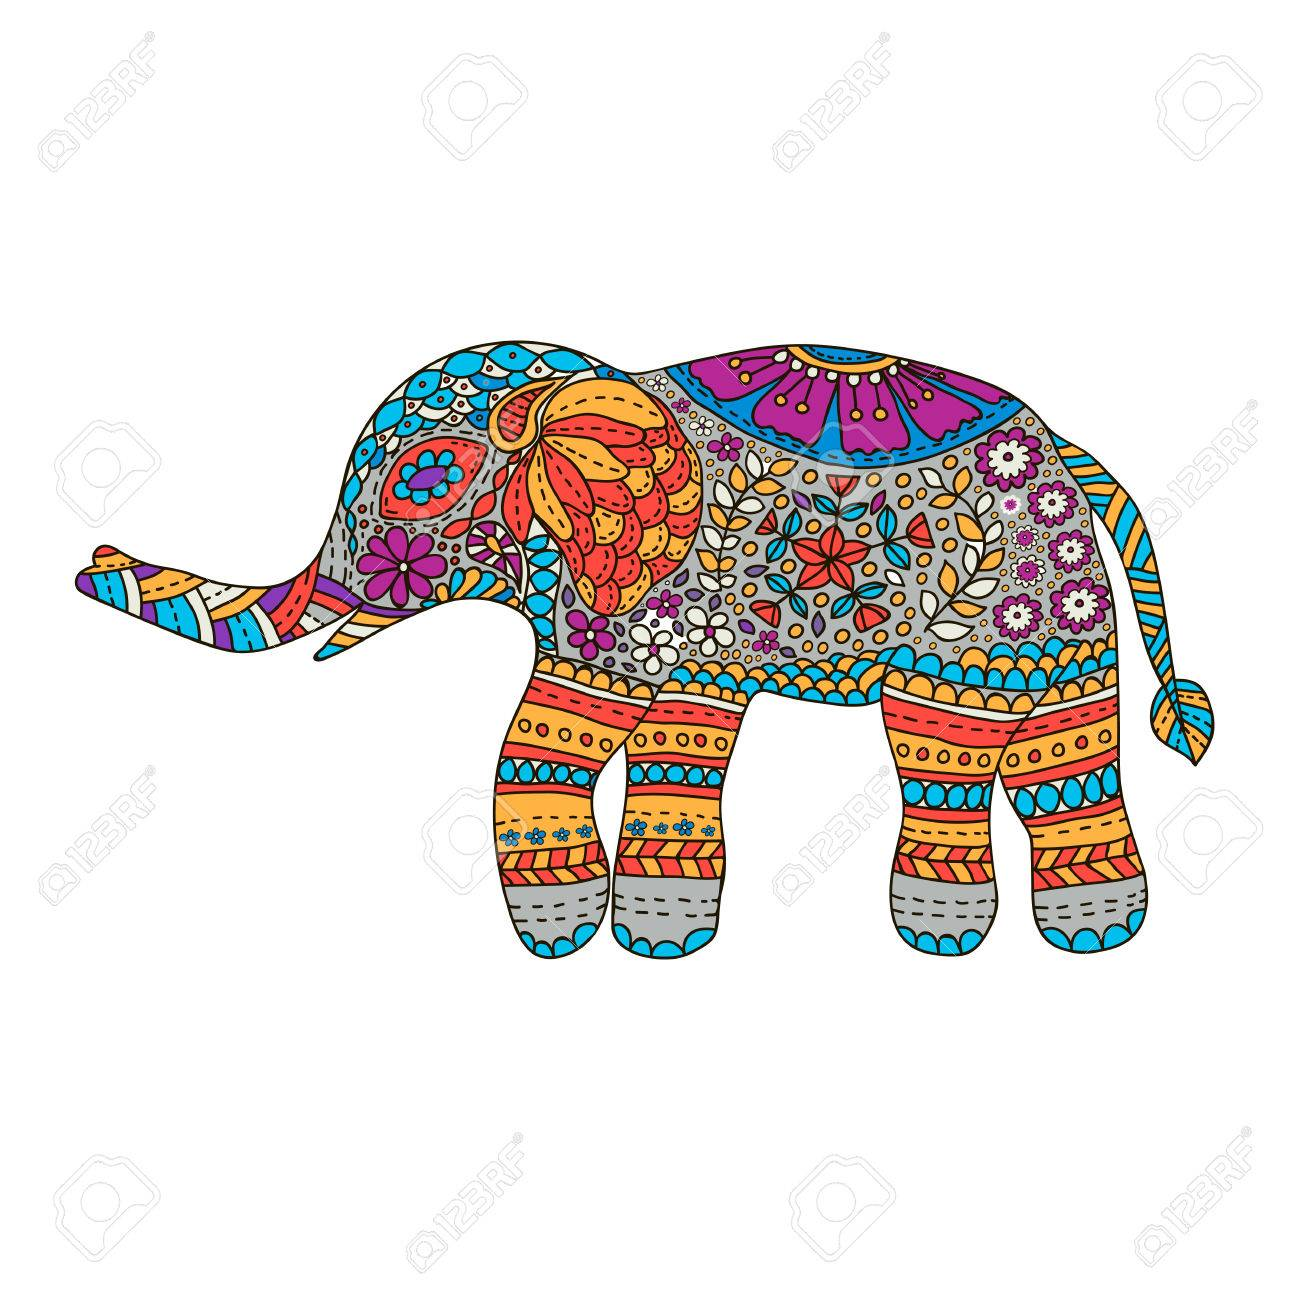 - Hand Drawn Colorful Elephant With Ethnic Floral Doodle Pattern